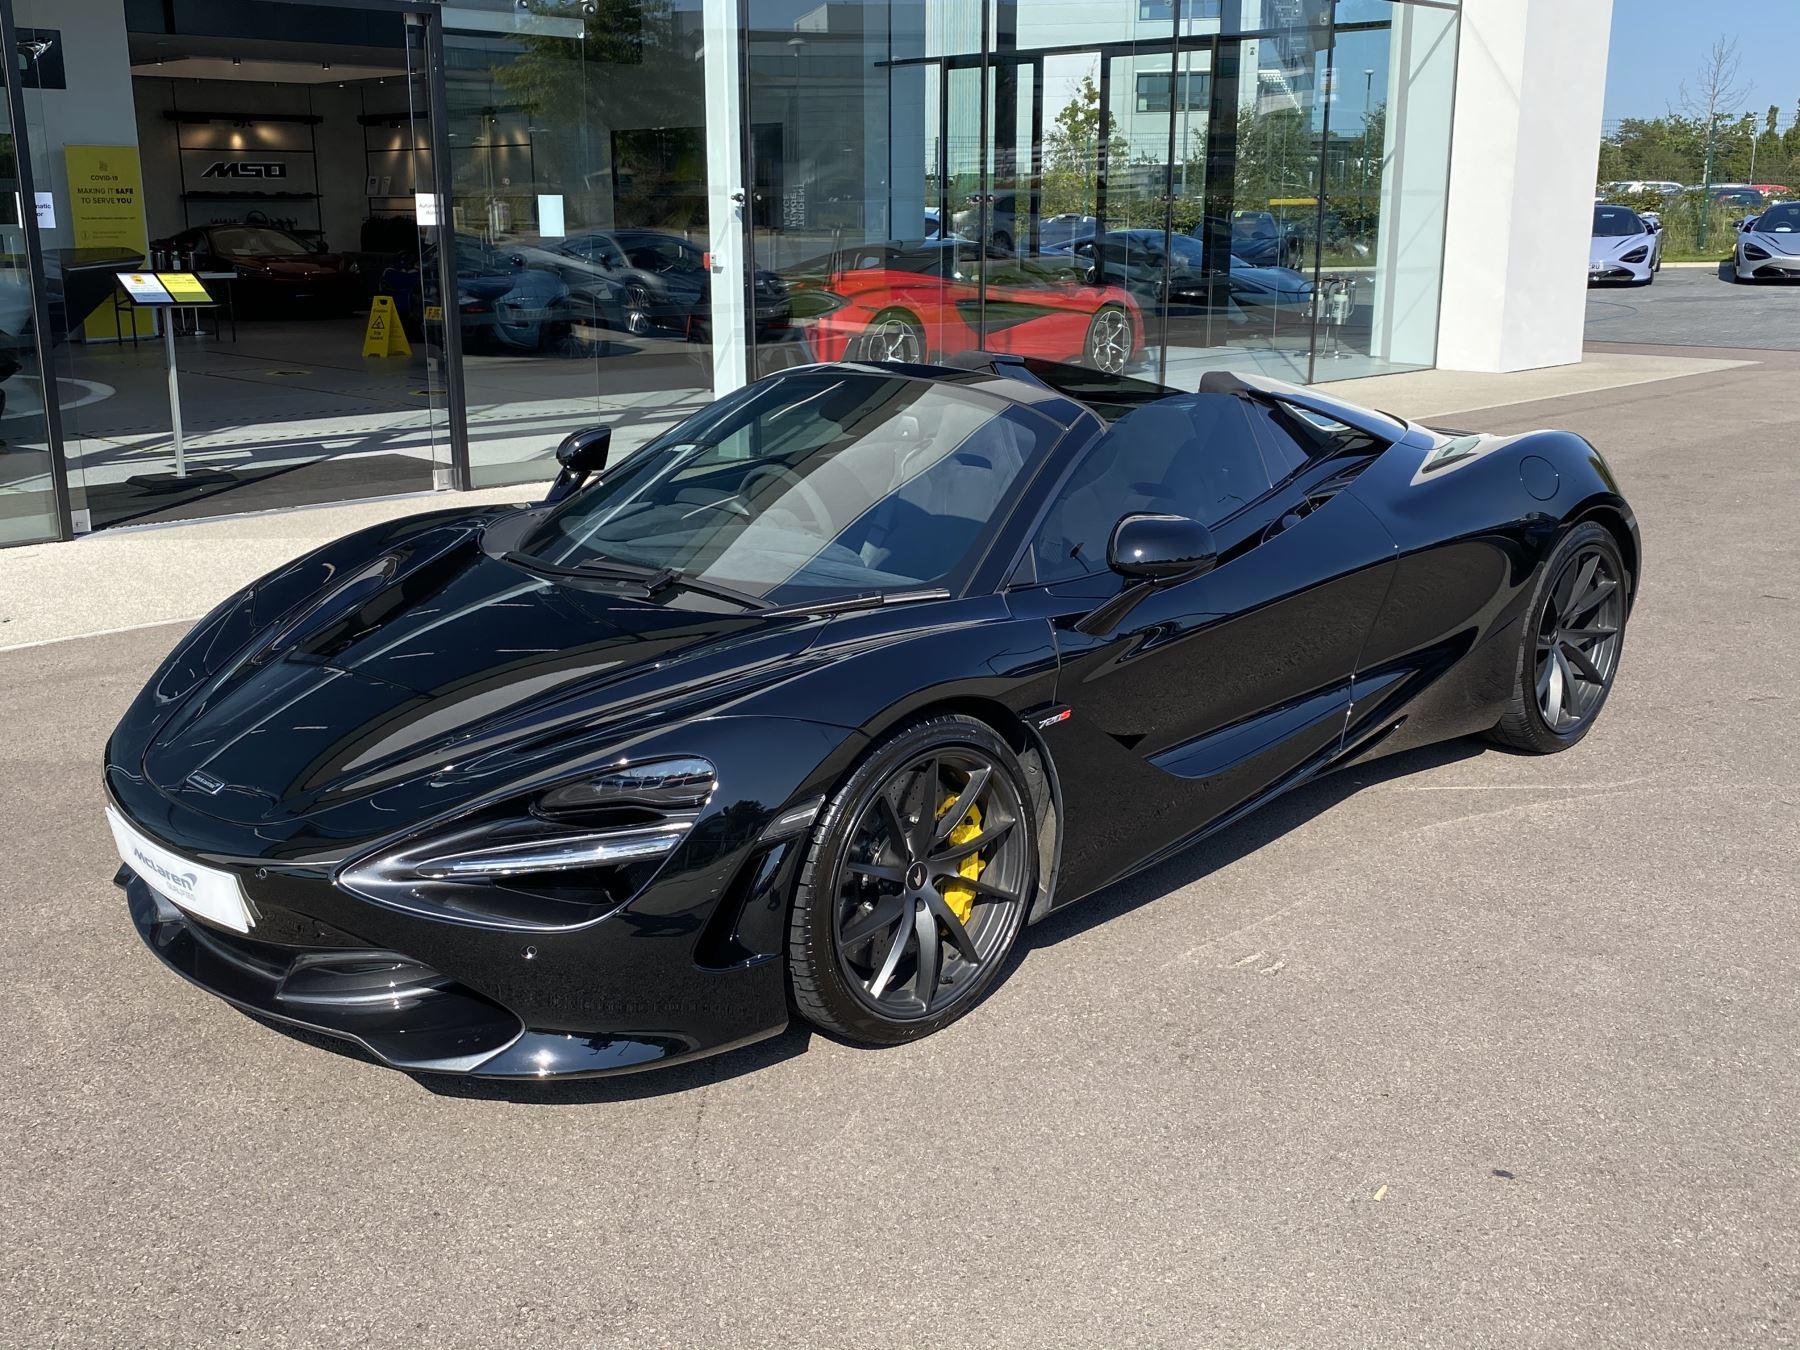 McLaren 720S Spider SSG  3.8 Semi-Automatic 2 door Convertible (2019)